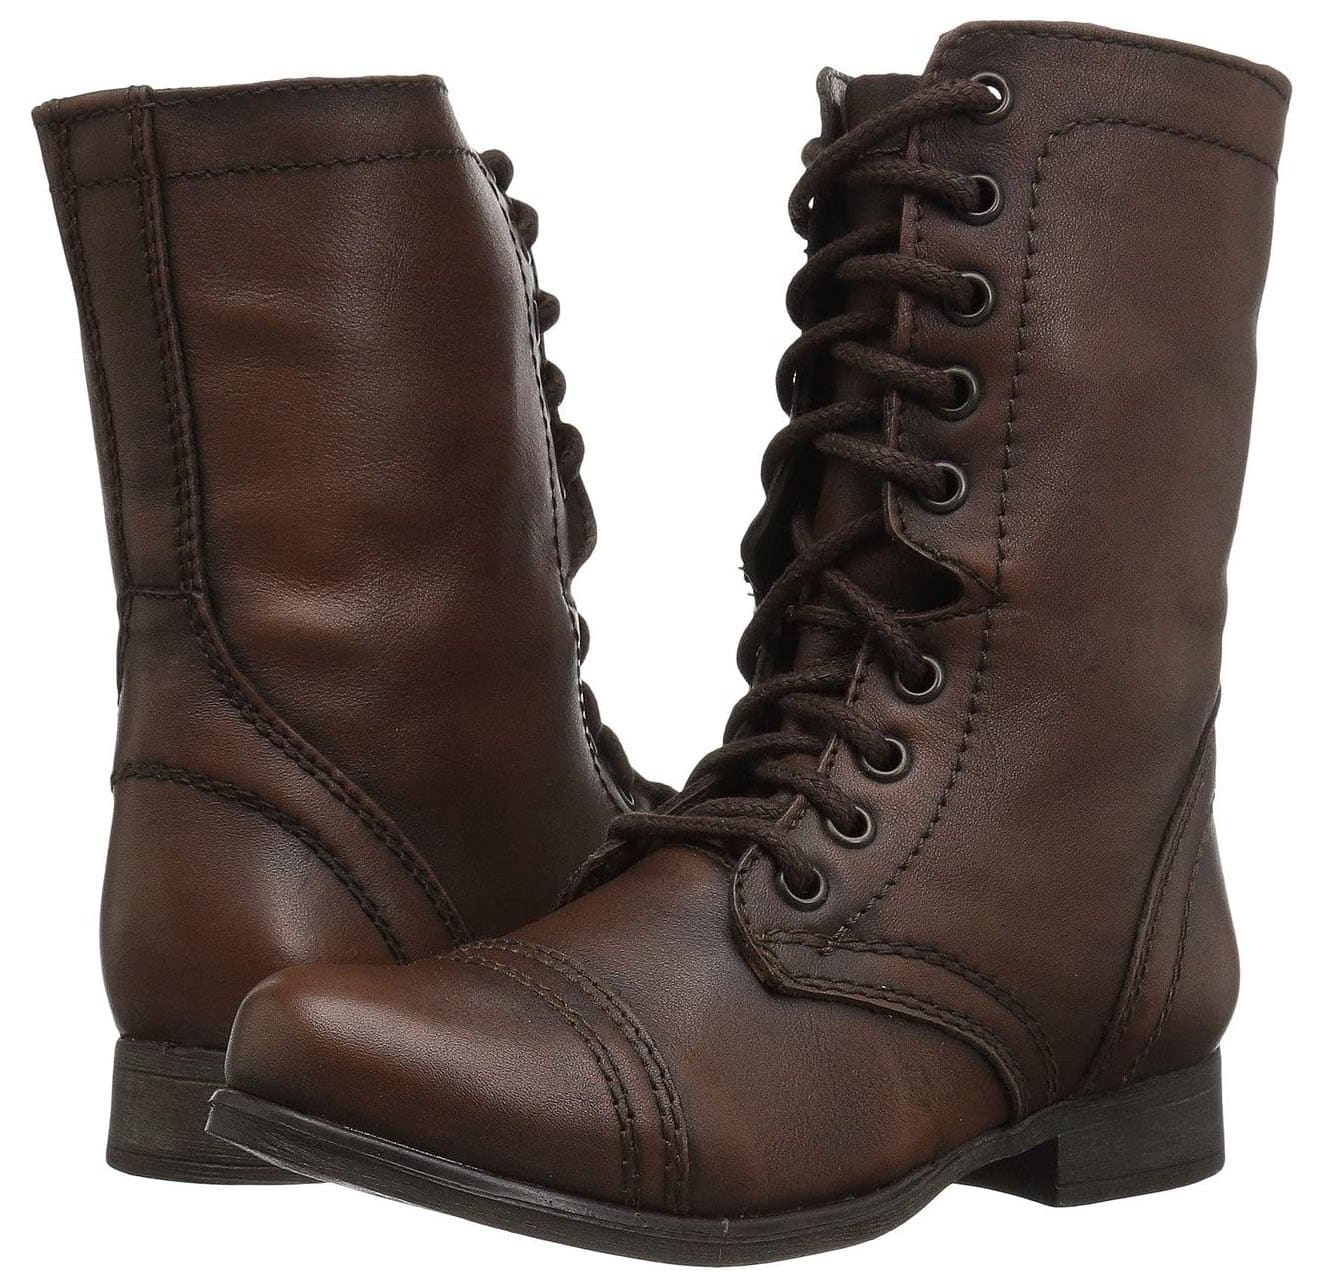 The Troopa boot comes in an array of colorway, including classic brown leather